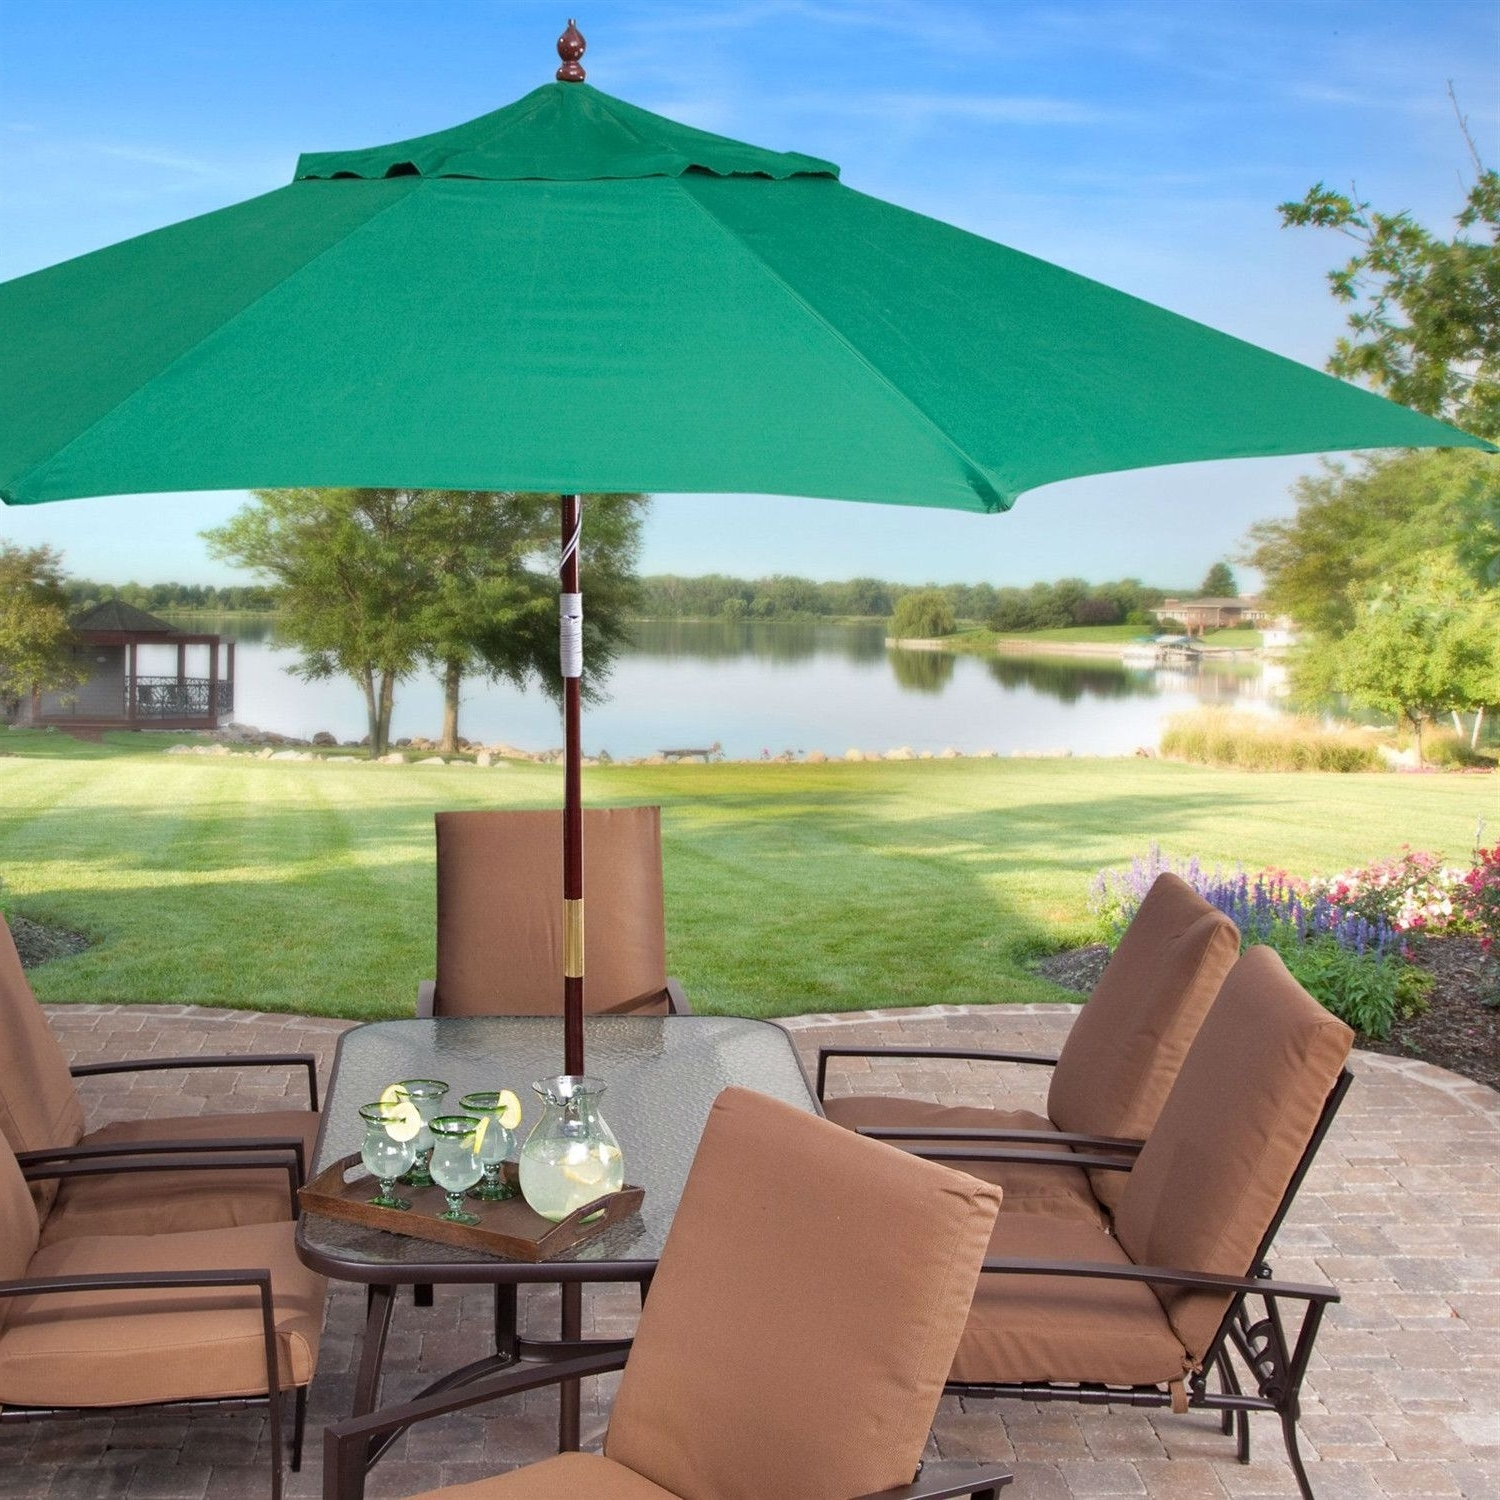 Most Recently Released Commercial Patio Umbrellas In 11 Ft Wood Patio Umbrella With Green Canopy – Commercial Grade (View 17 of 20)